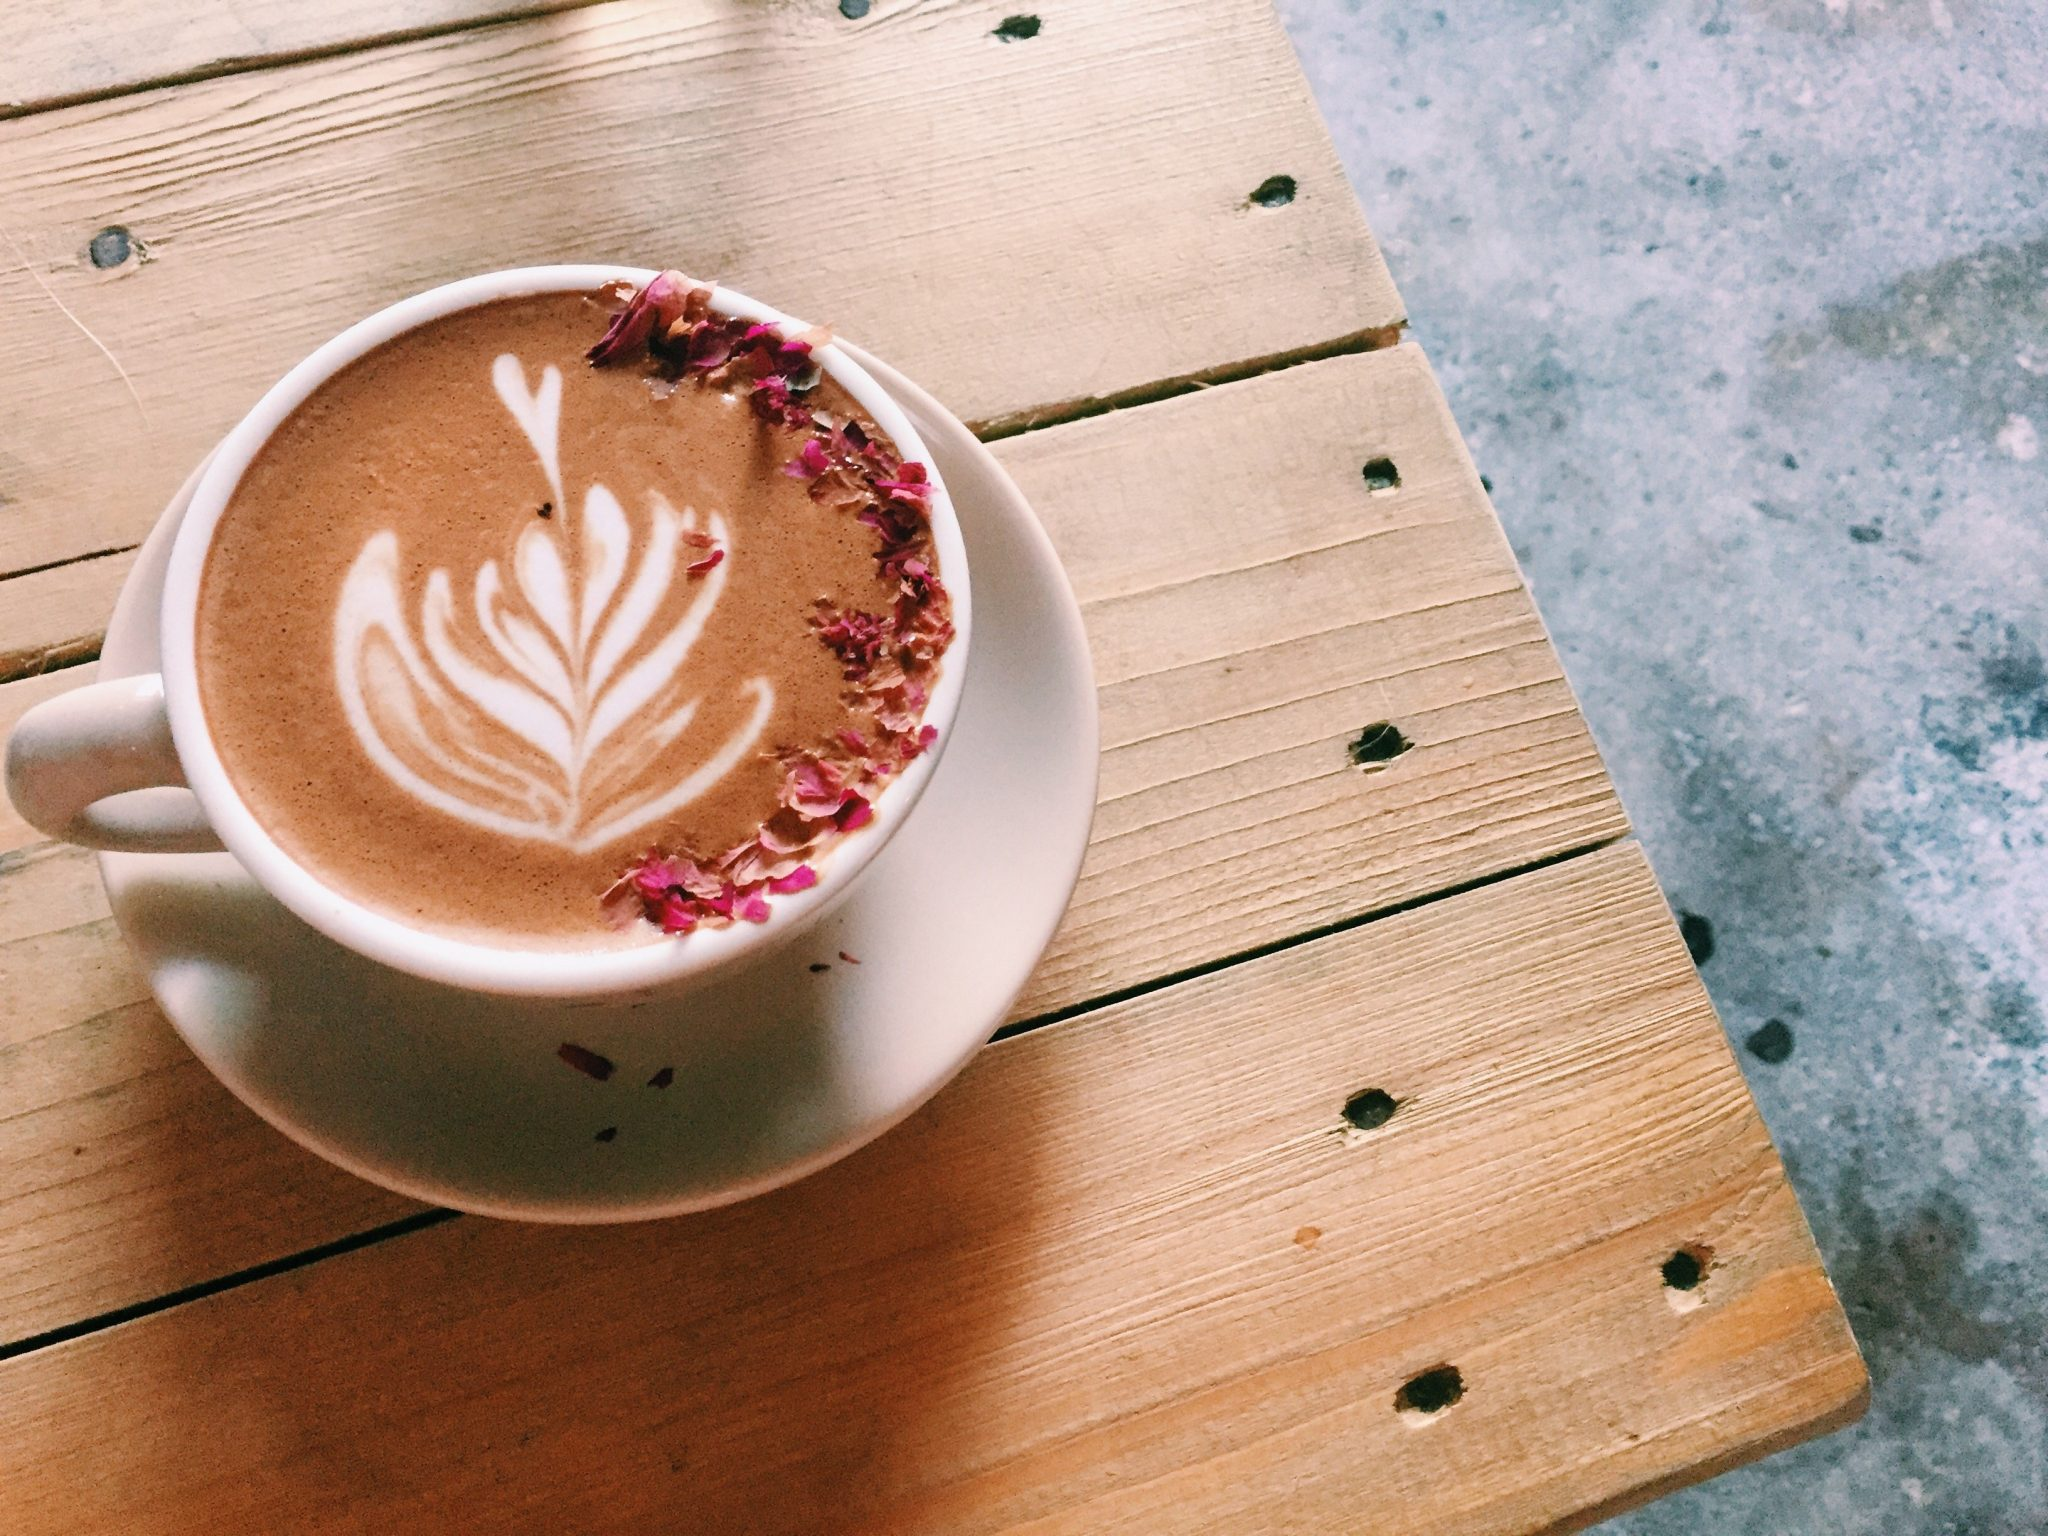 Rose mocha at Beansprout Cafe - Penang, Malaysia | Asia Travel